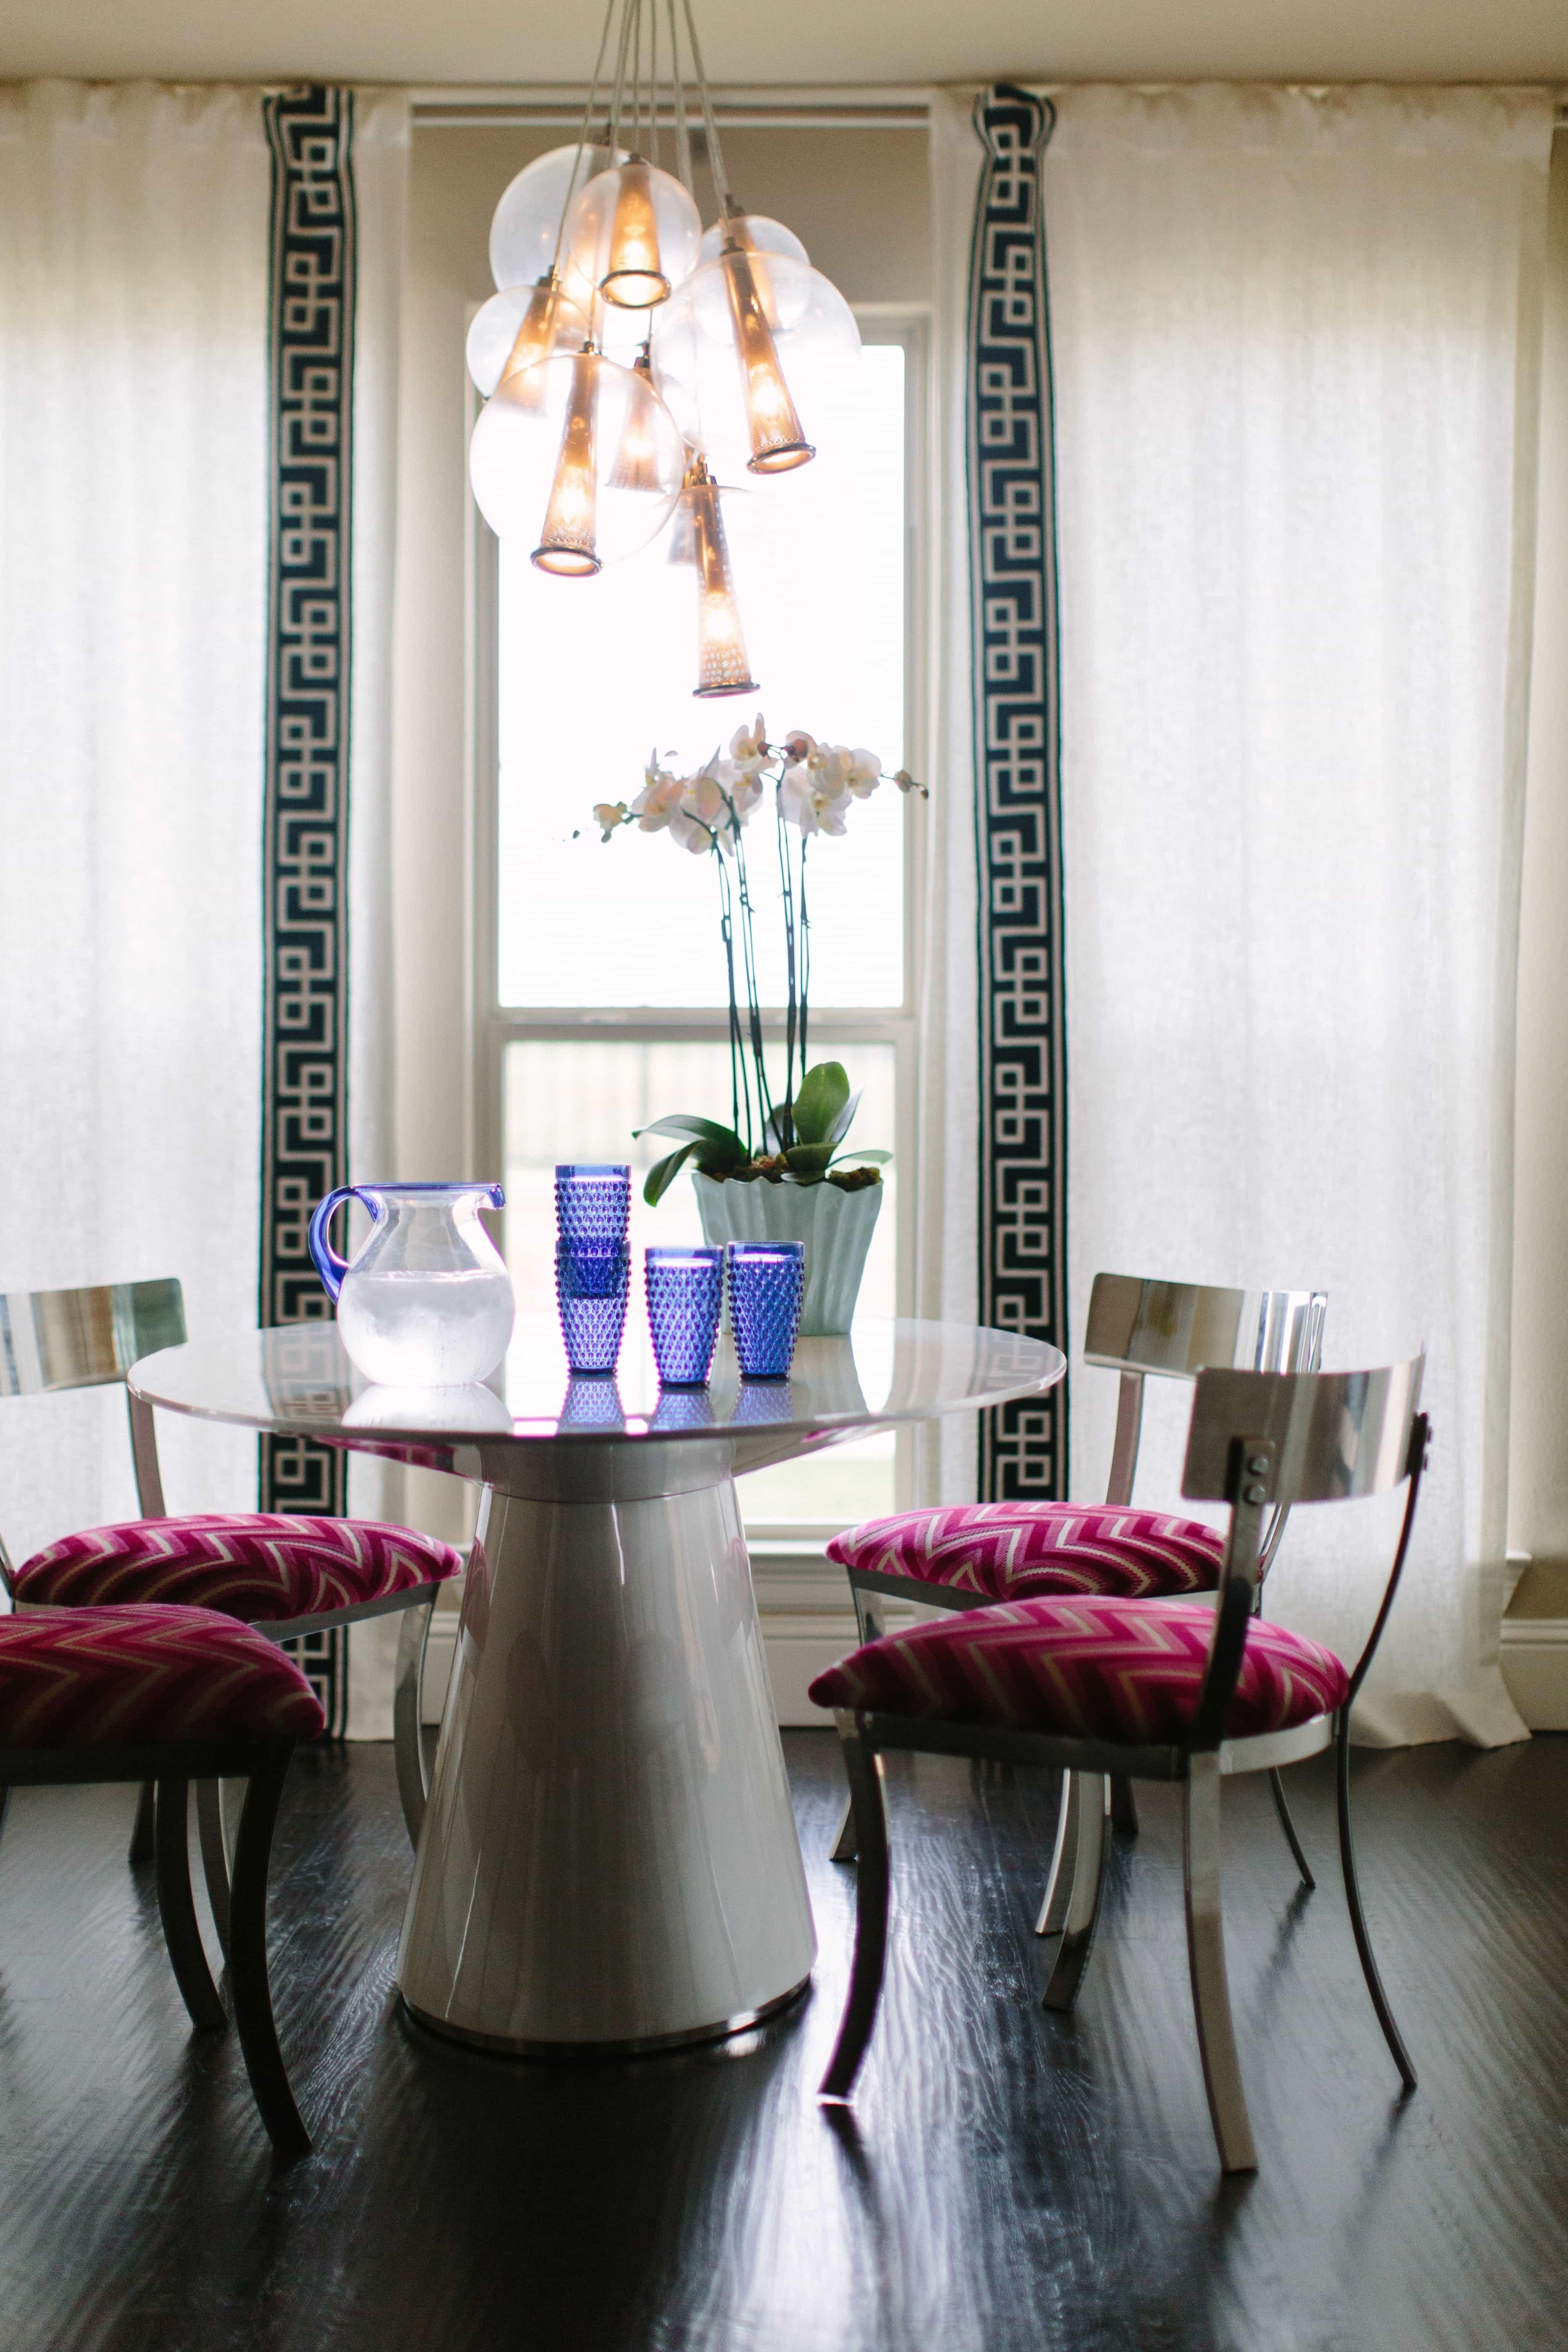 Shiny Metal Chairs Polished Table Art Decor Dining